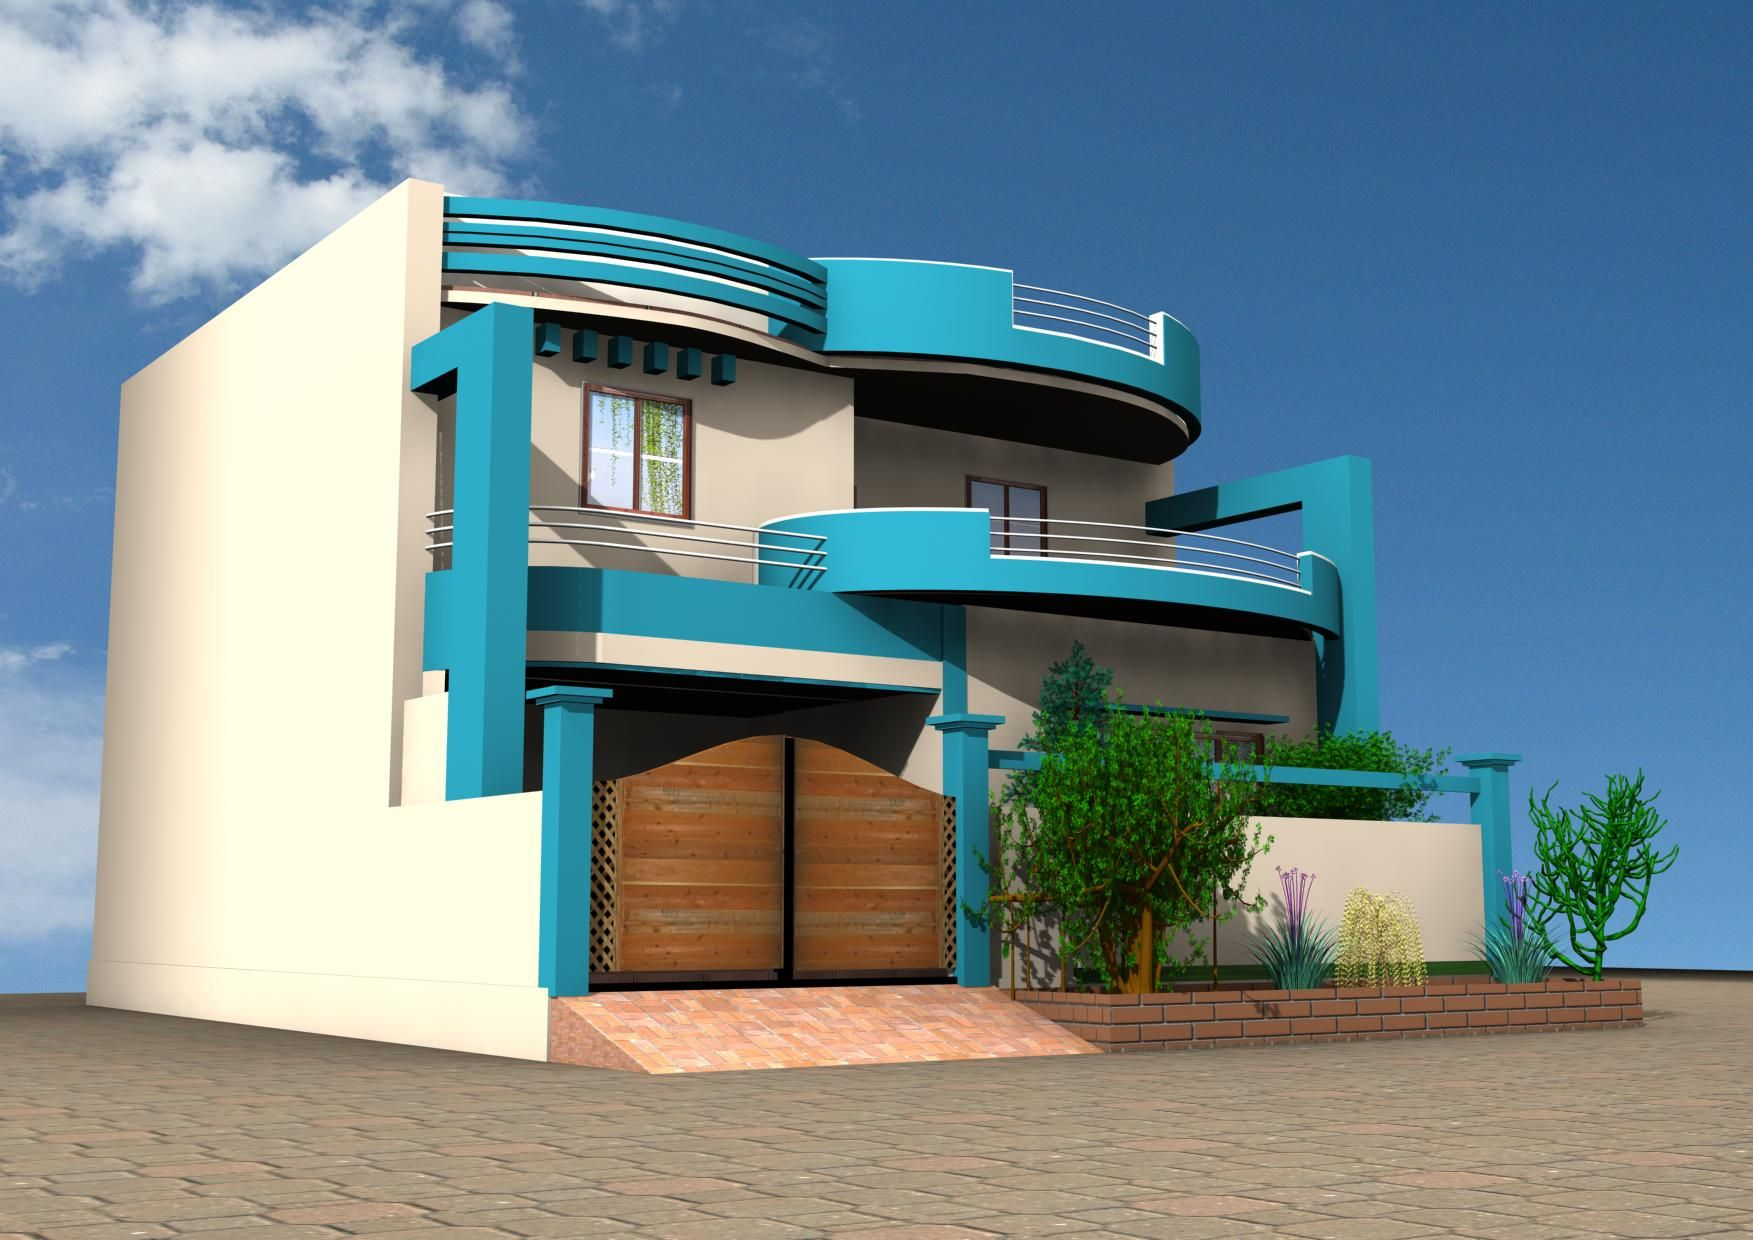 3d home design images hd 1080p Free 3d building design software